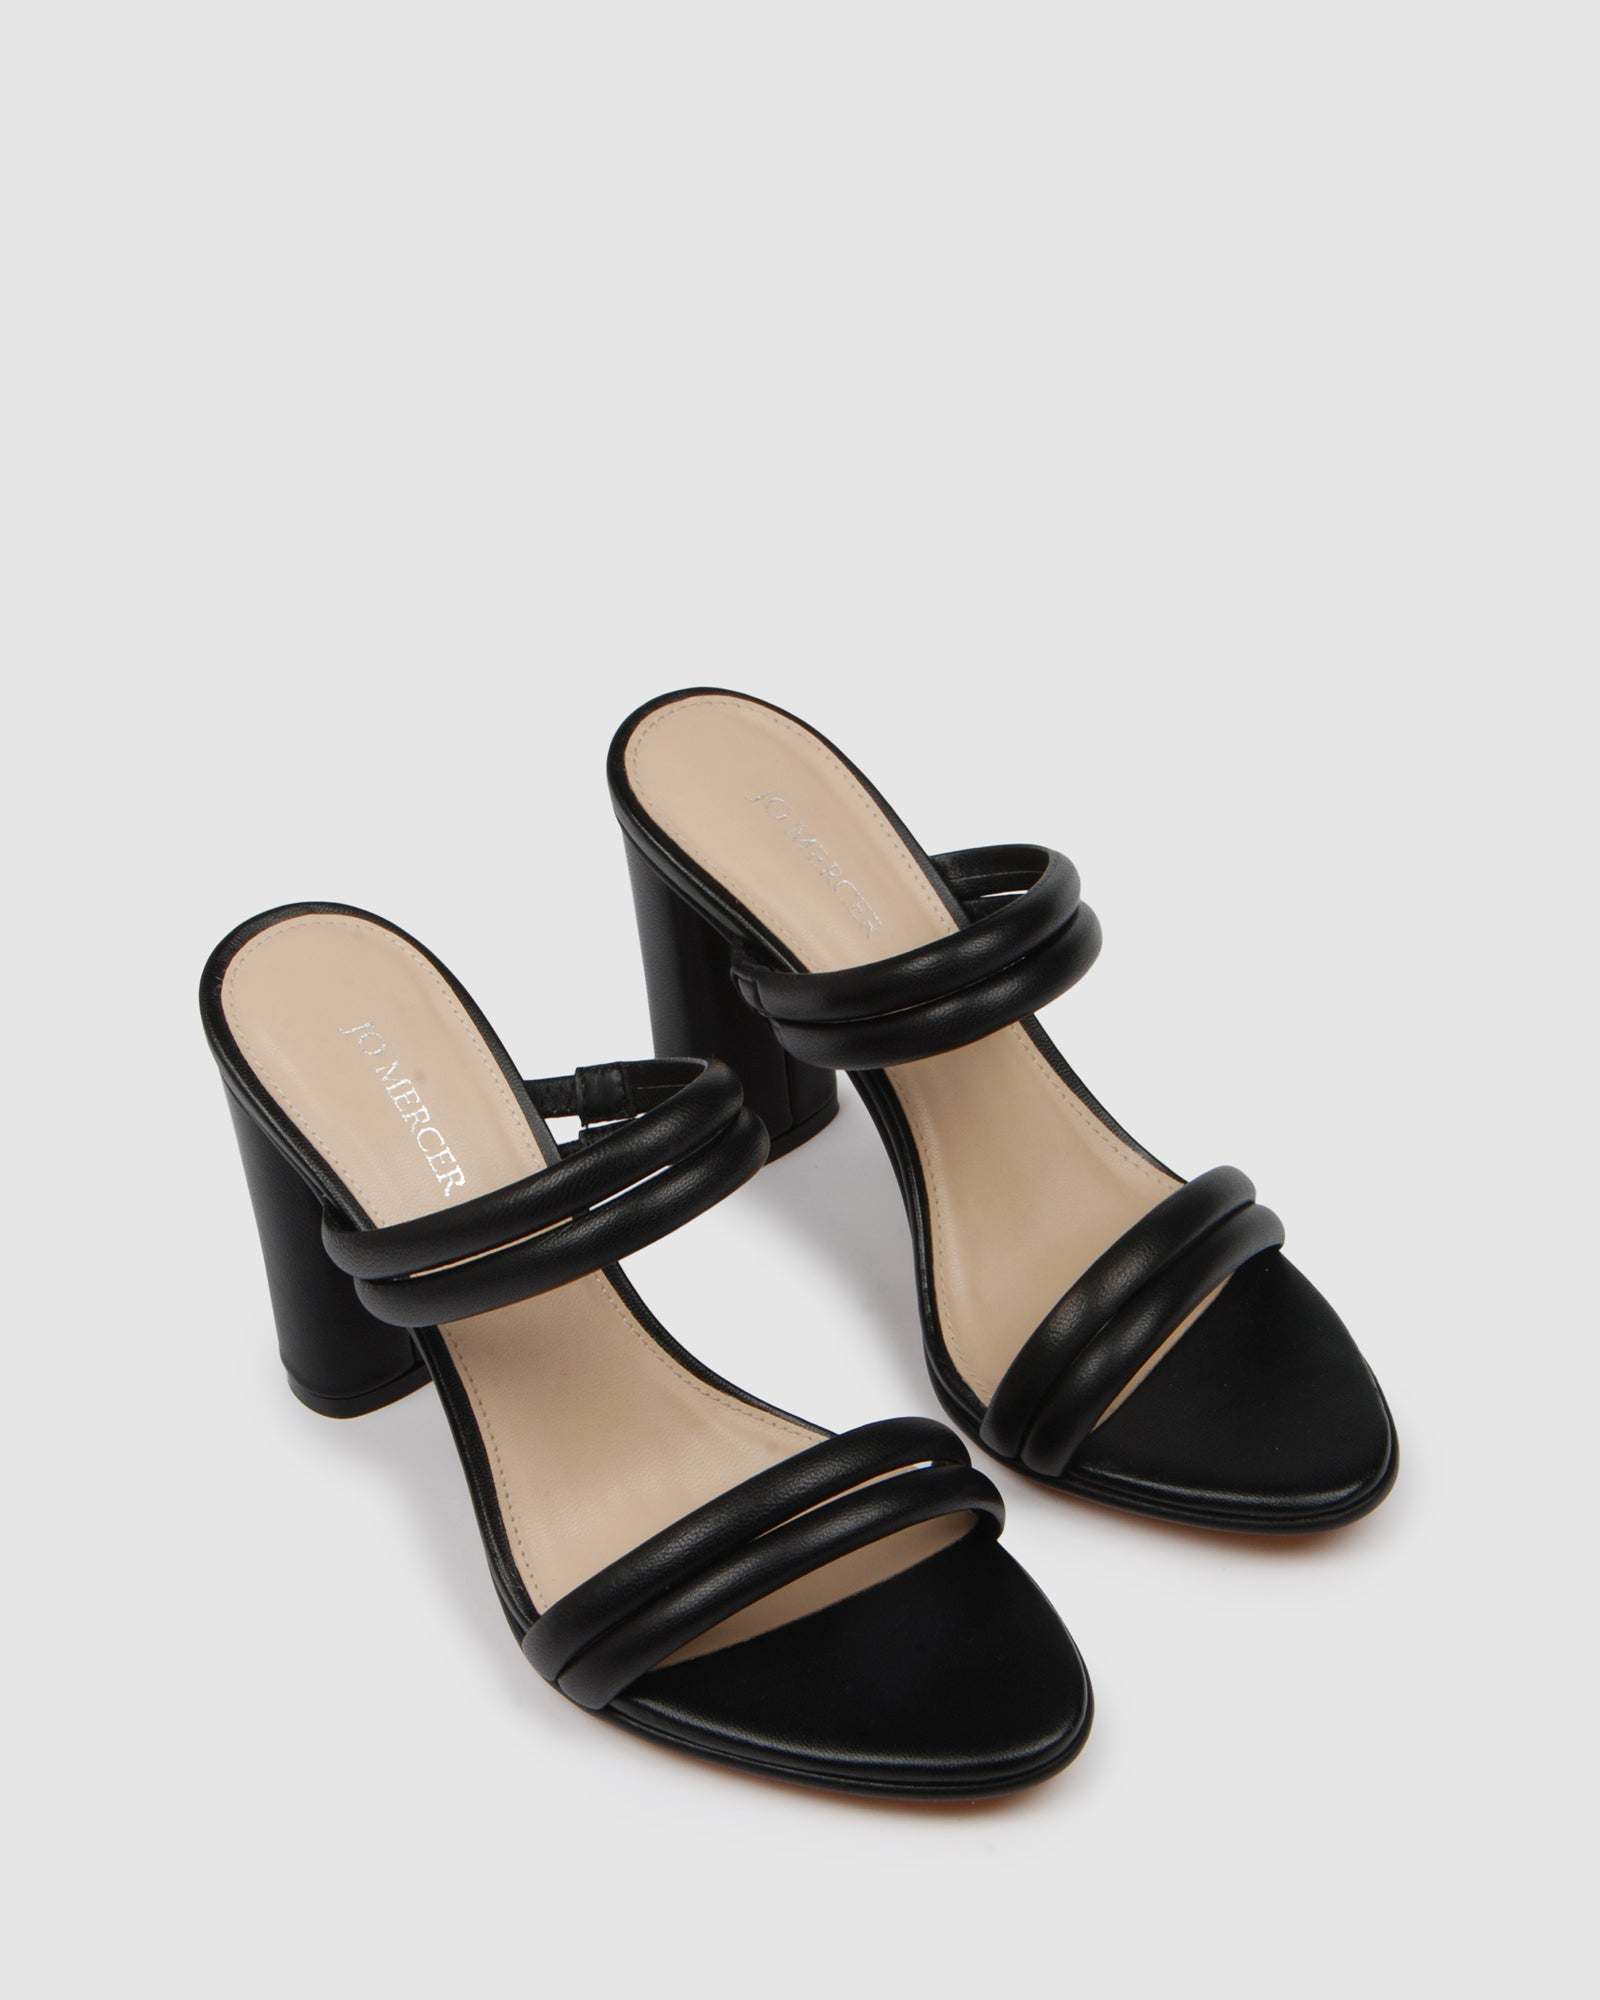 POMONA HIGH HEEL SANDALS BLACK LEATHER